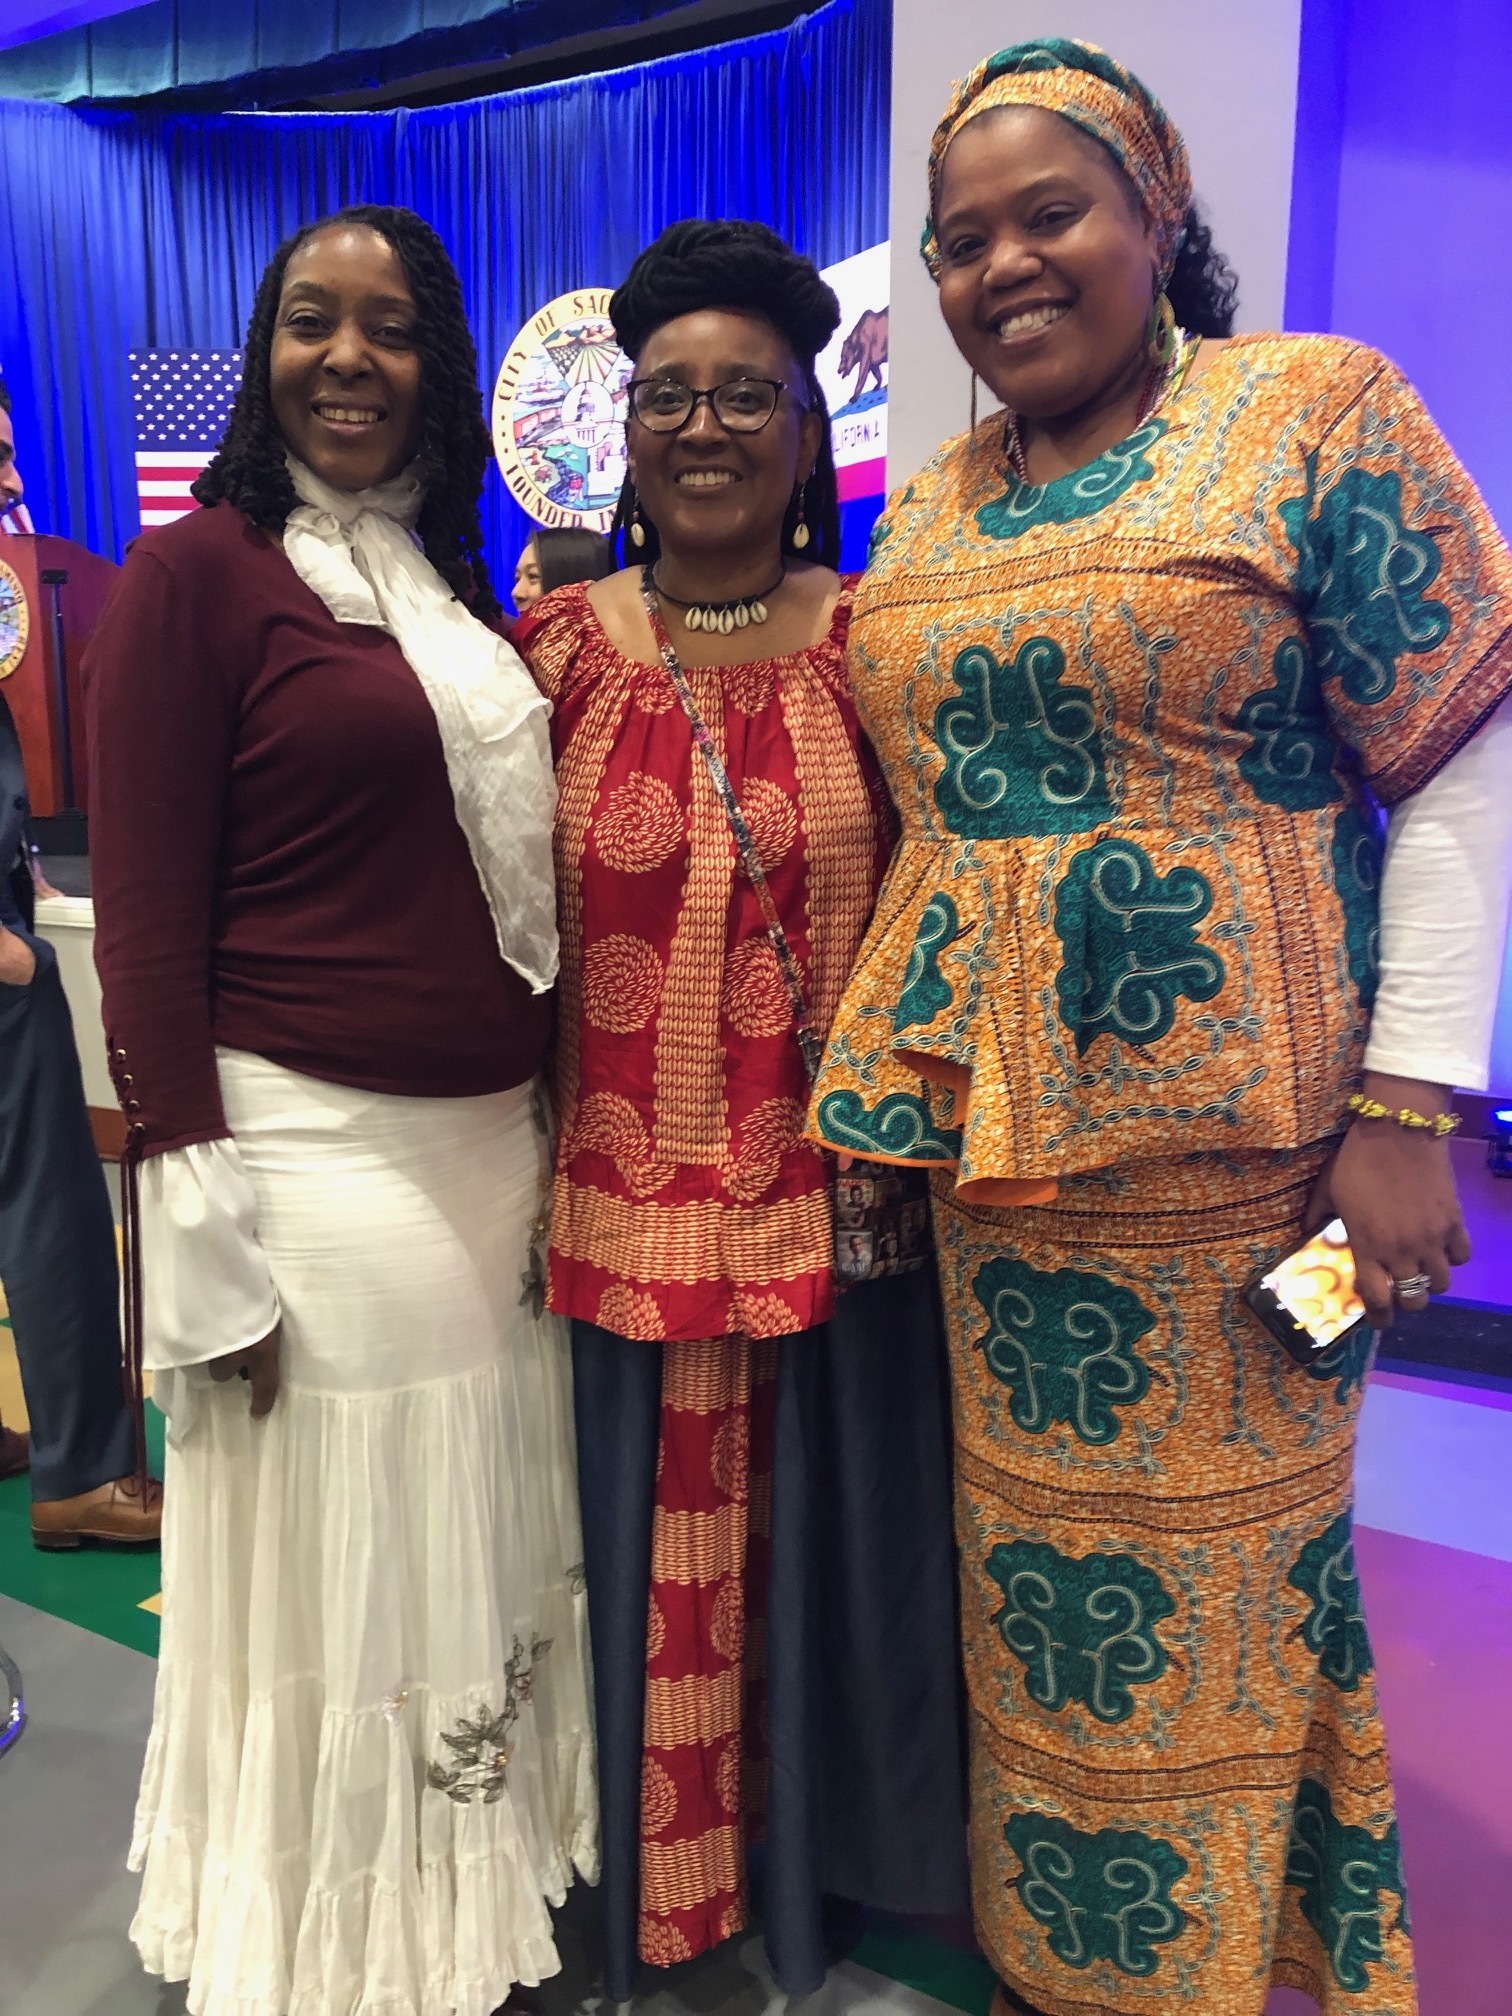 Miss Jackie Rose (middle) with her colleagues Yolanda Stevenson (left) and RoLanda Wilkins